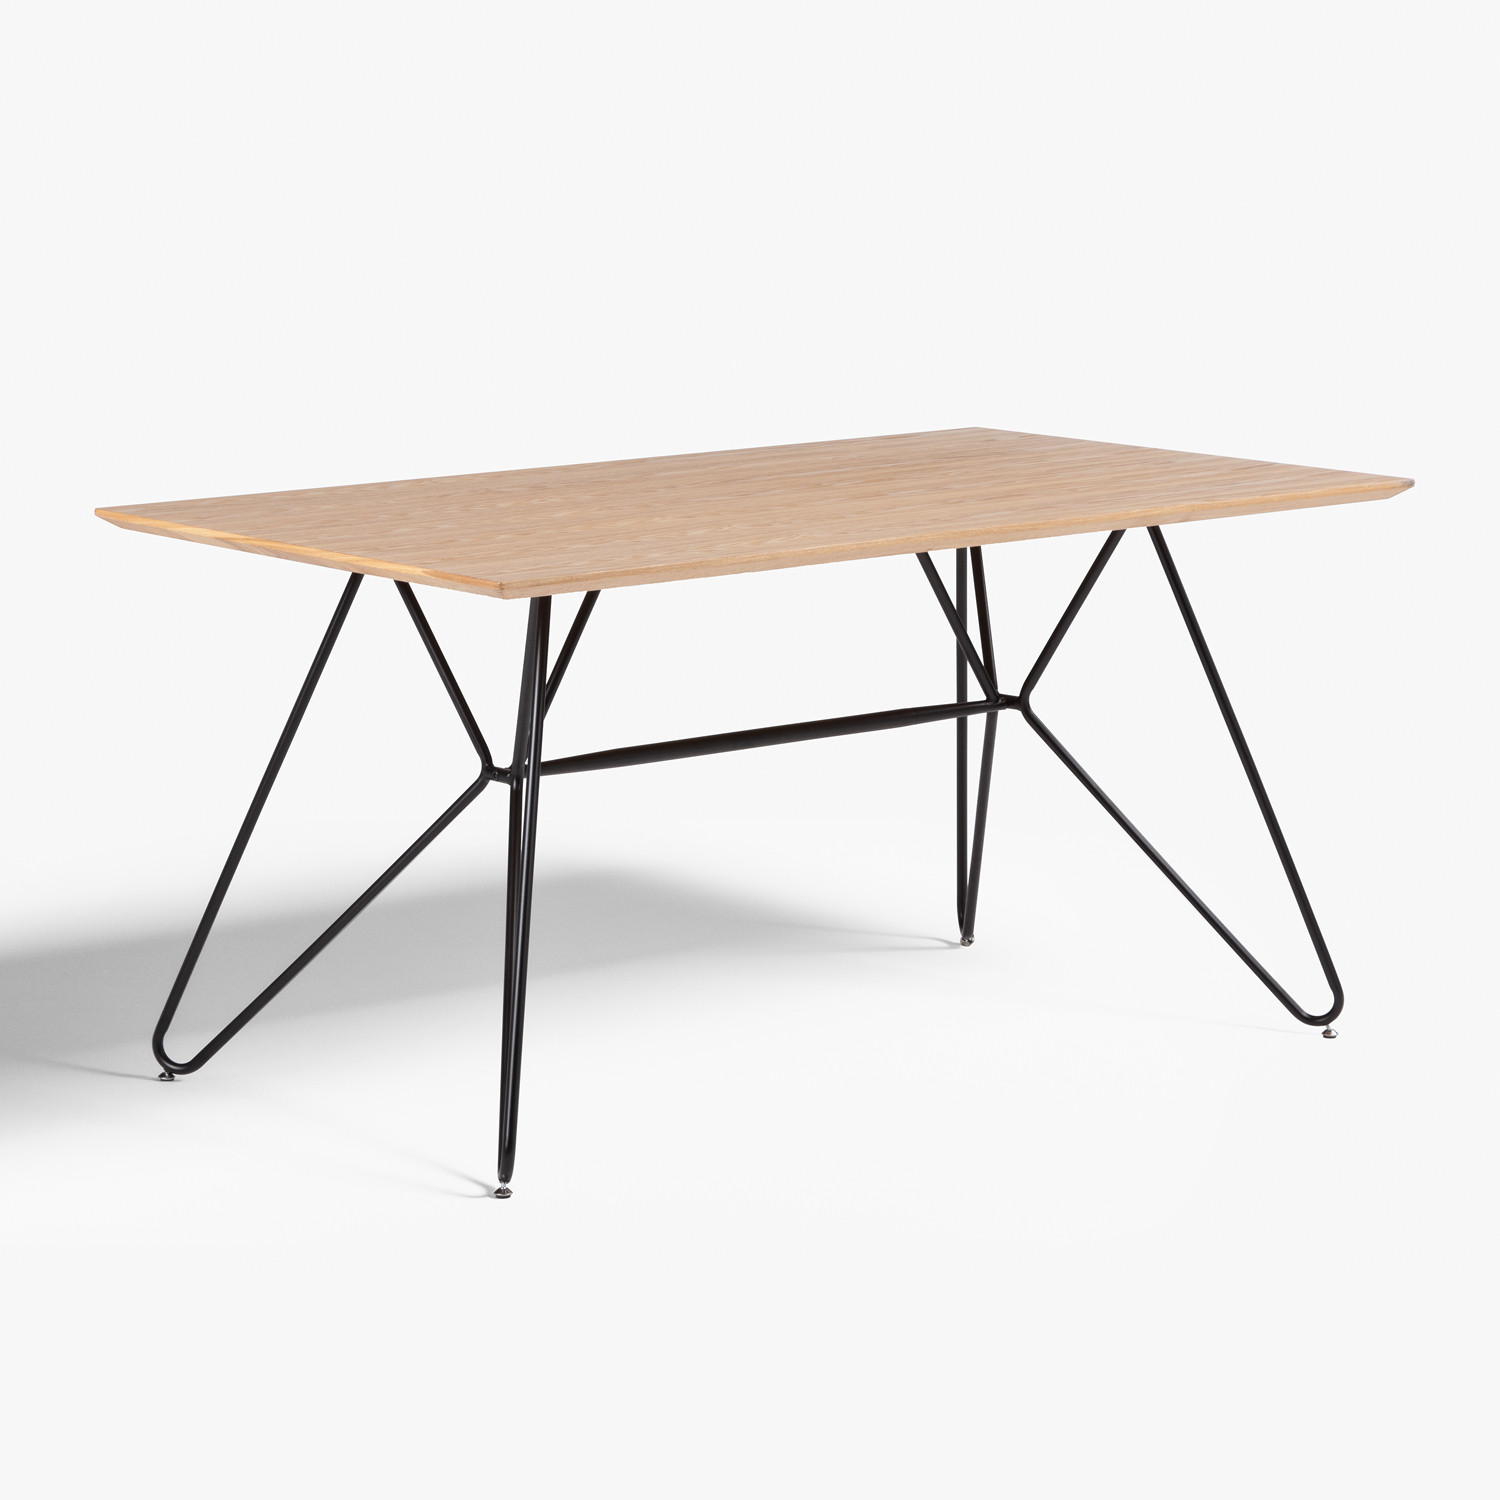 Rectangular Dining Table in MDF (150x90 cm) Allex, gallery image 654721